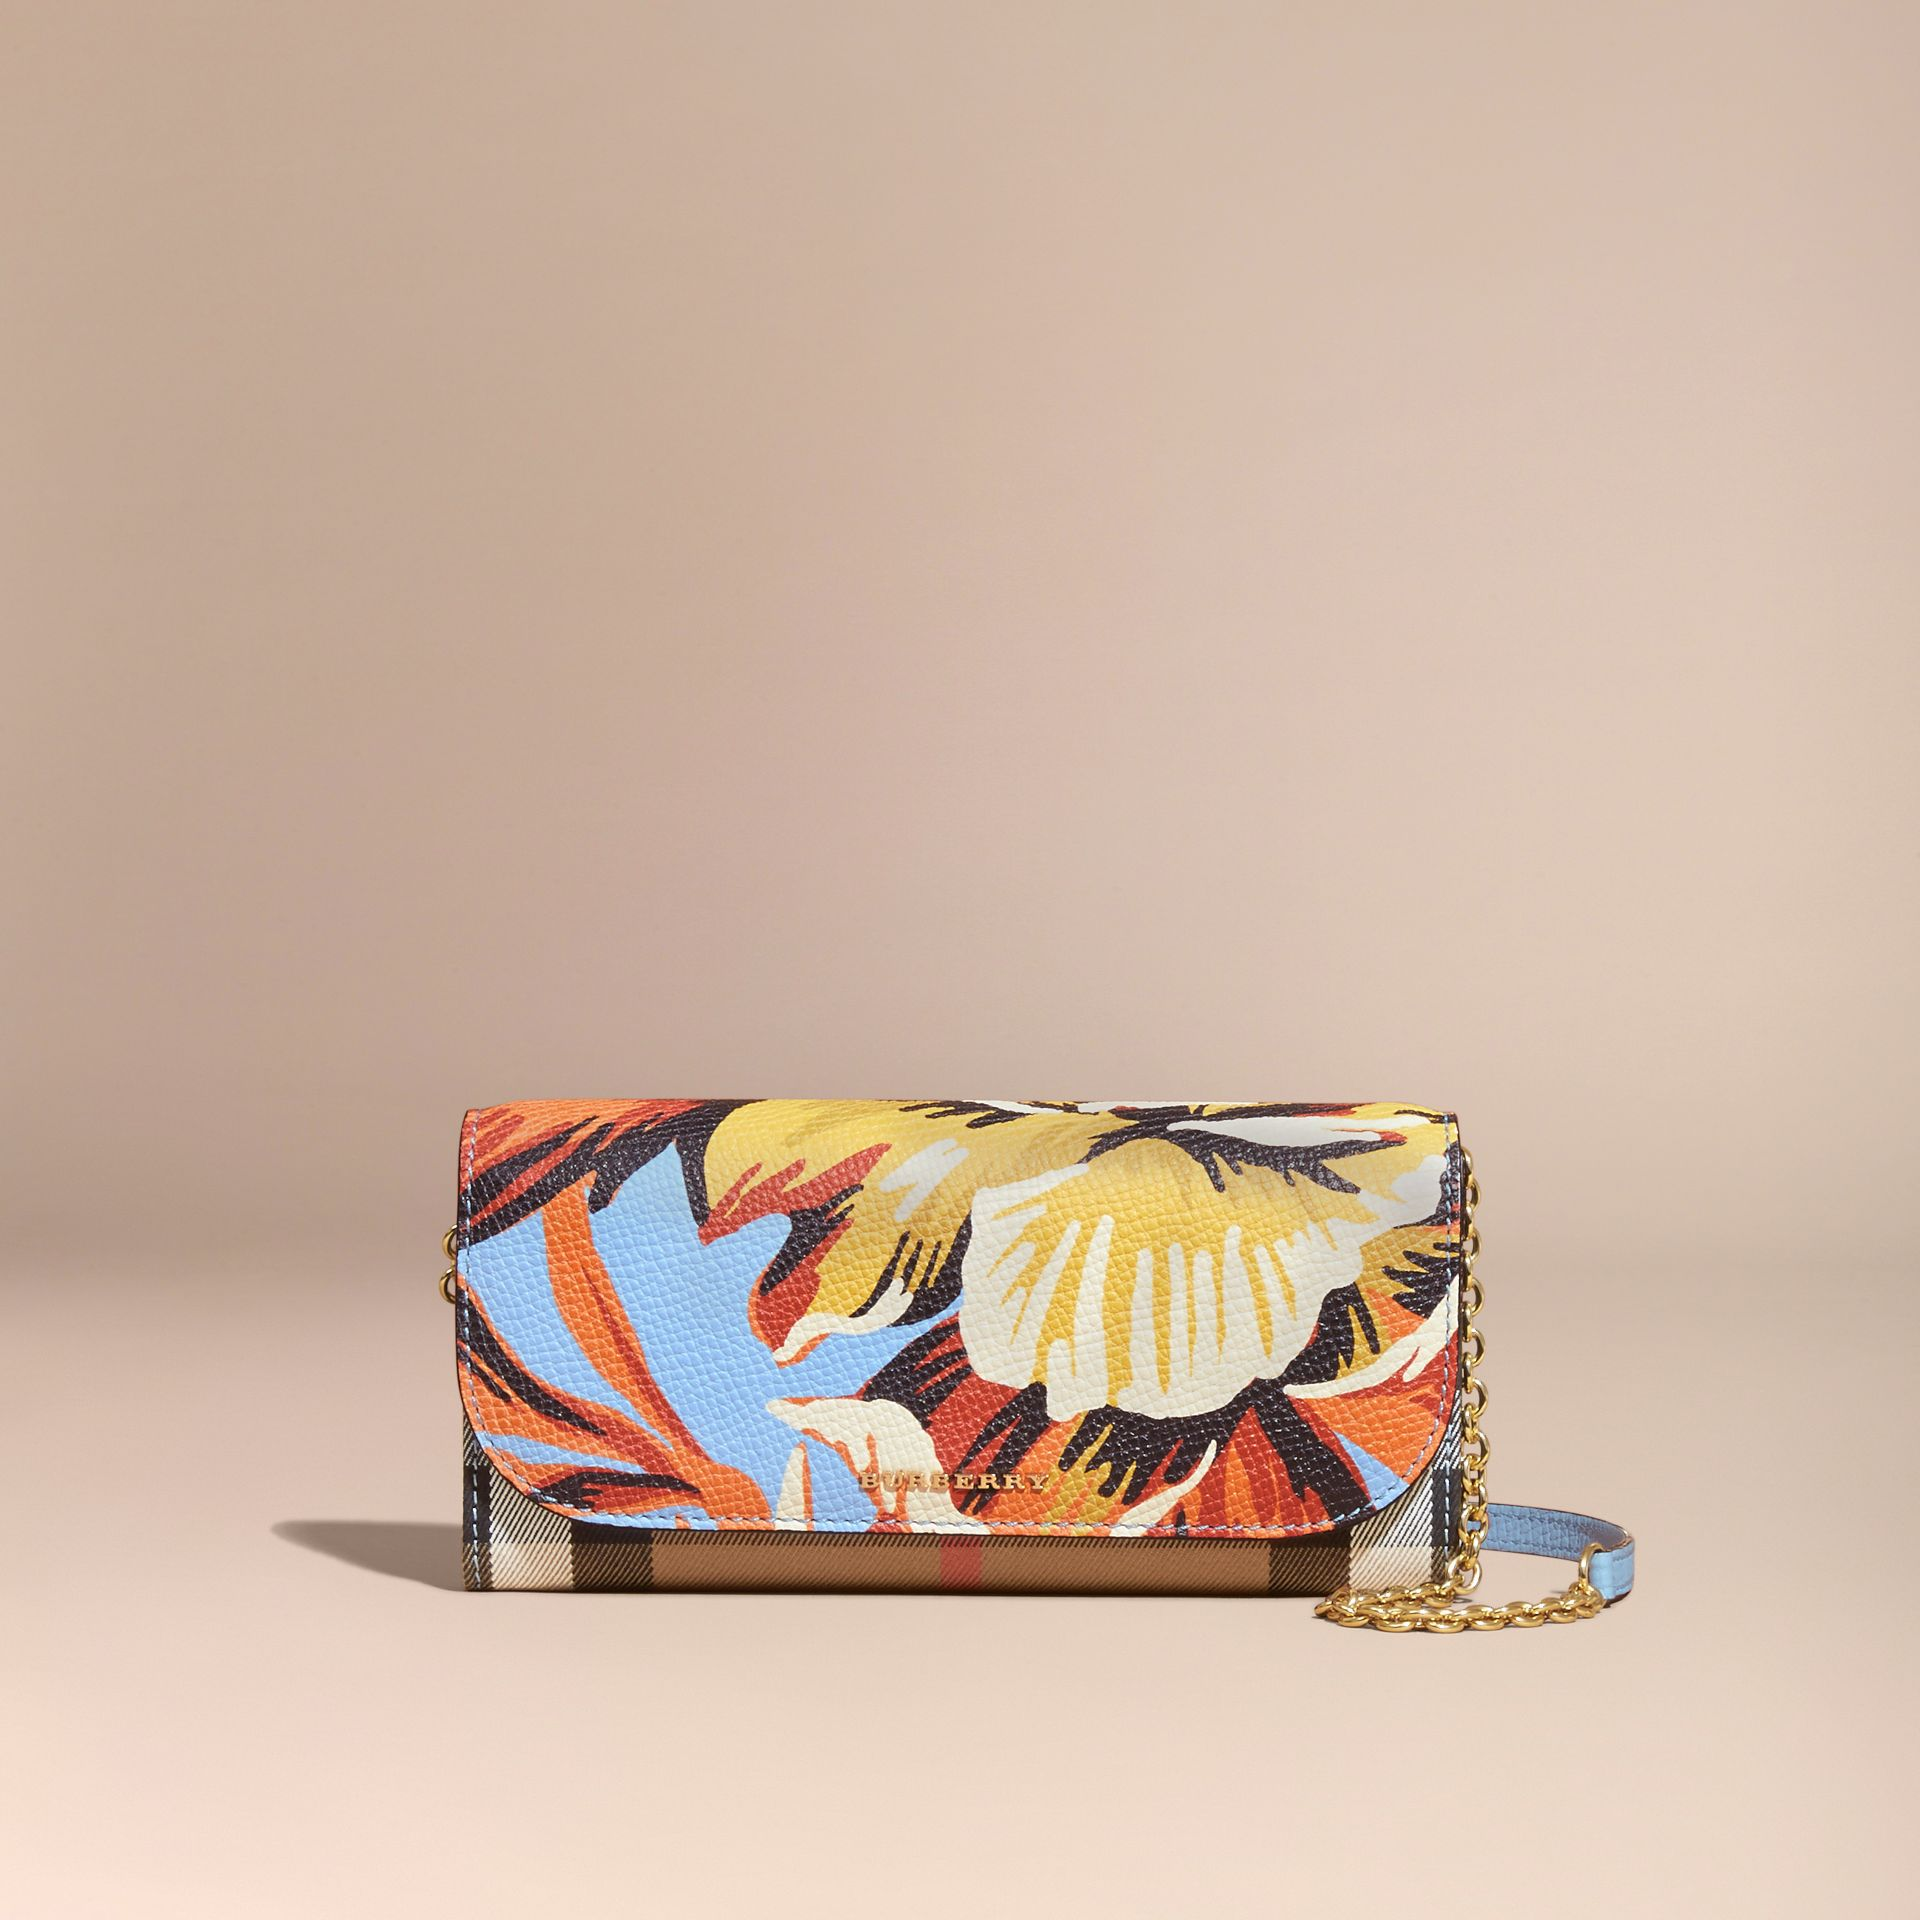 House Check and Peony Rose Print Wallet with Chain in Pale Blue/vibrant Orange - gallery image 8